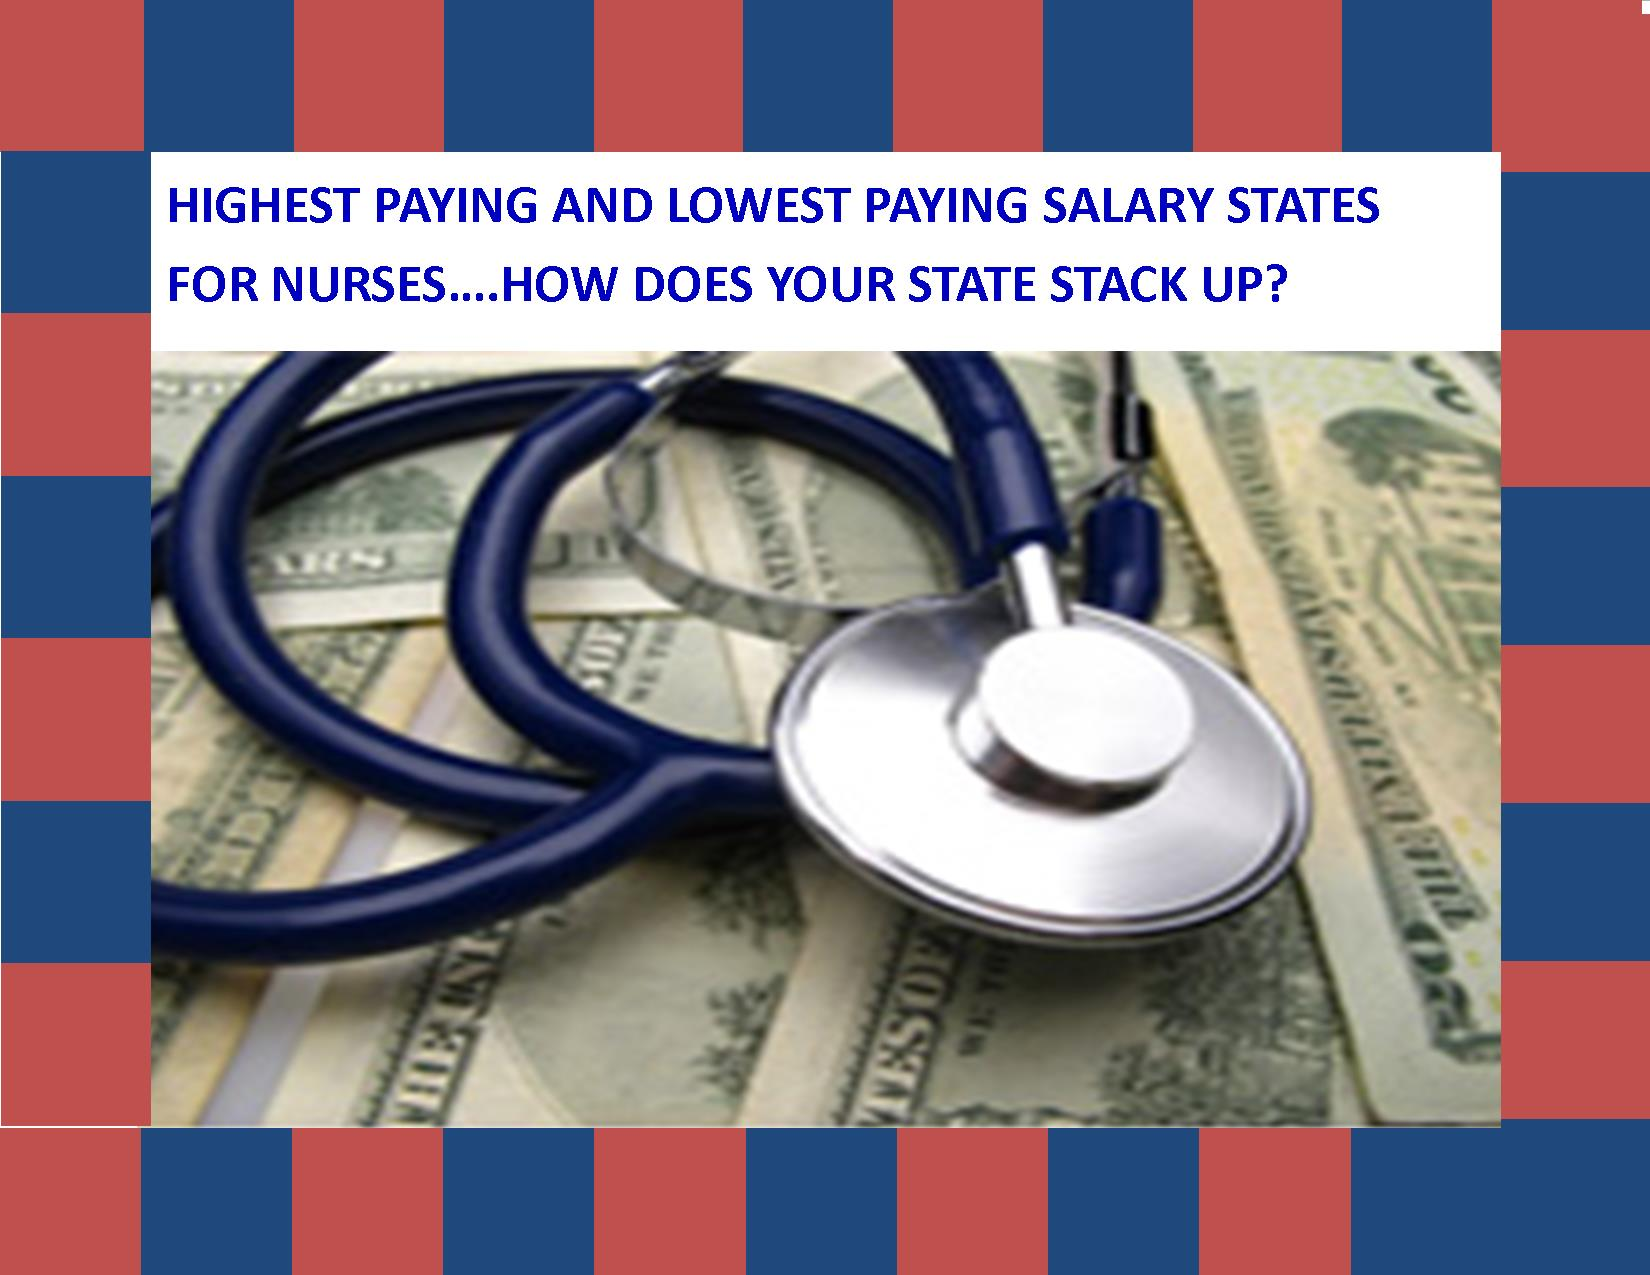 Highest and lowest paying salaries for nurses